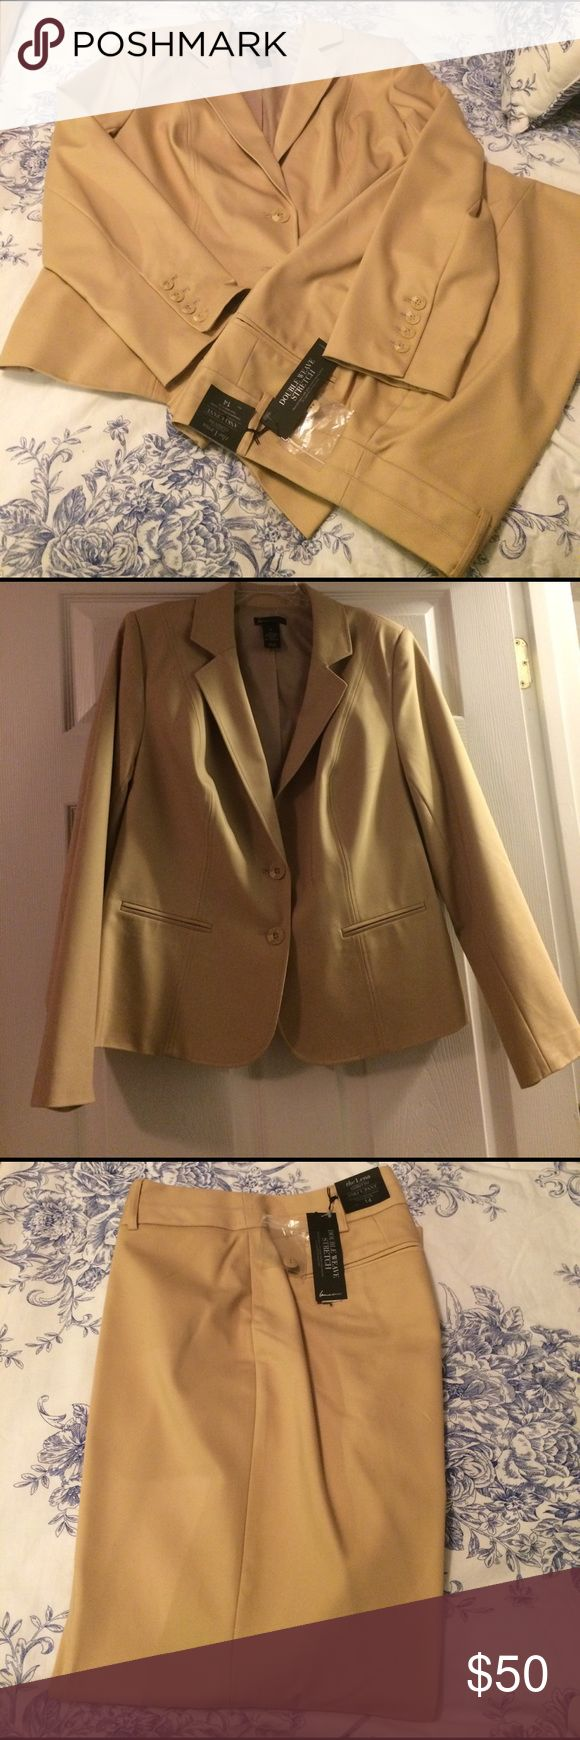 Lane Bryant Suit Separates camel lane Bryant suit separates. Jacket is size 16 New without tags, pants are size 14 and are new with tags. Lena ankle pants which are curvy fit. 52 cotton, 45 polyester 3% spandex- 2 back pockets. Jacket with 2 button closure and 2 pocket detail. Pants retail 69.95. Jacket 79.95 Lane Bryant Other